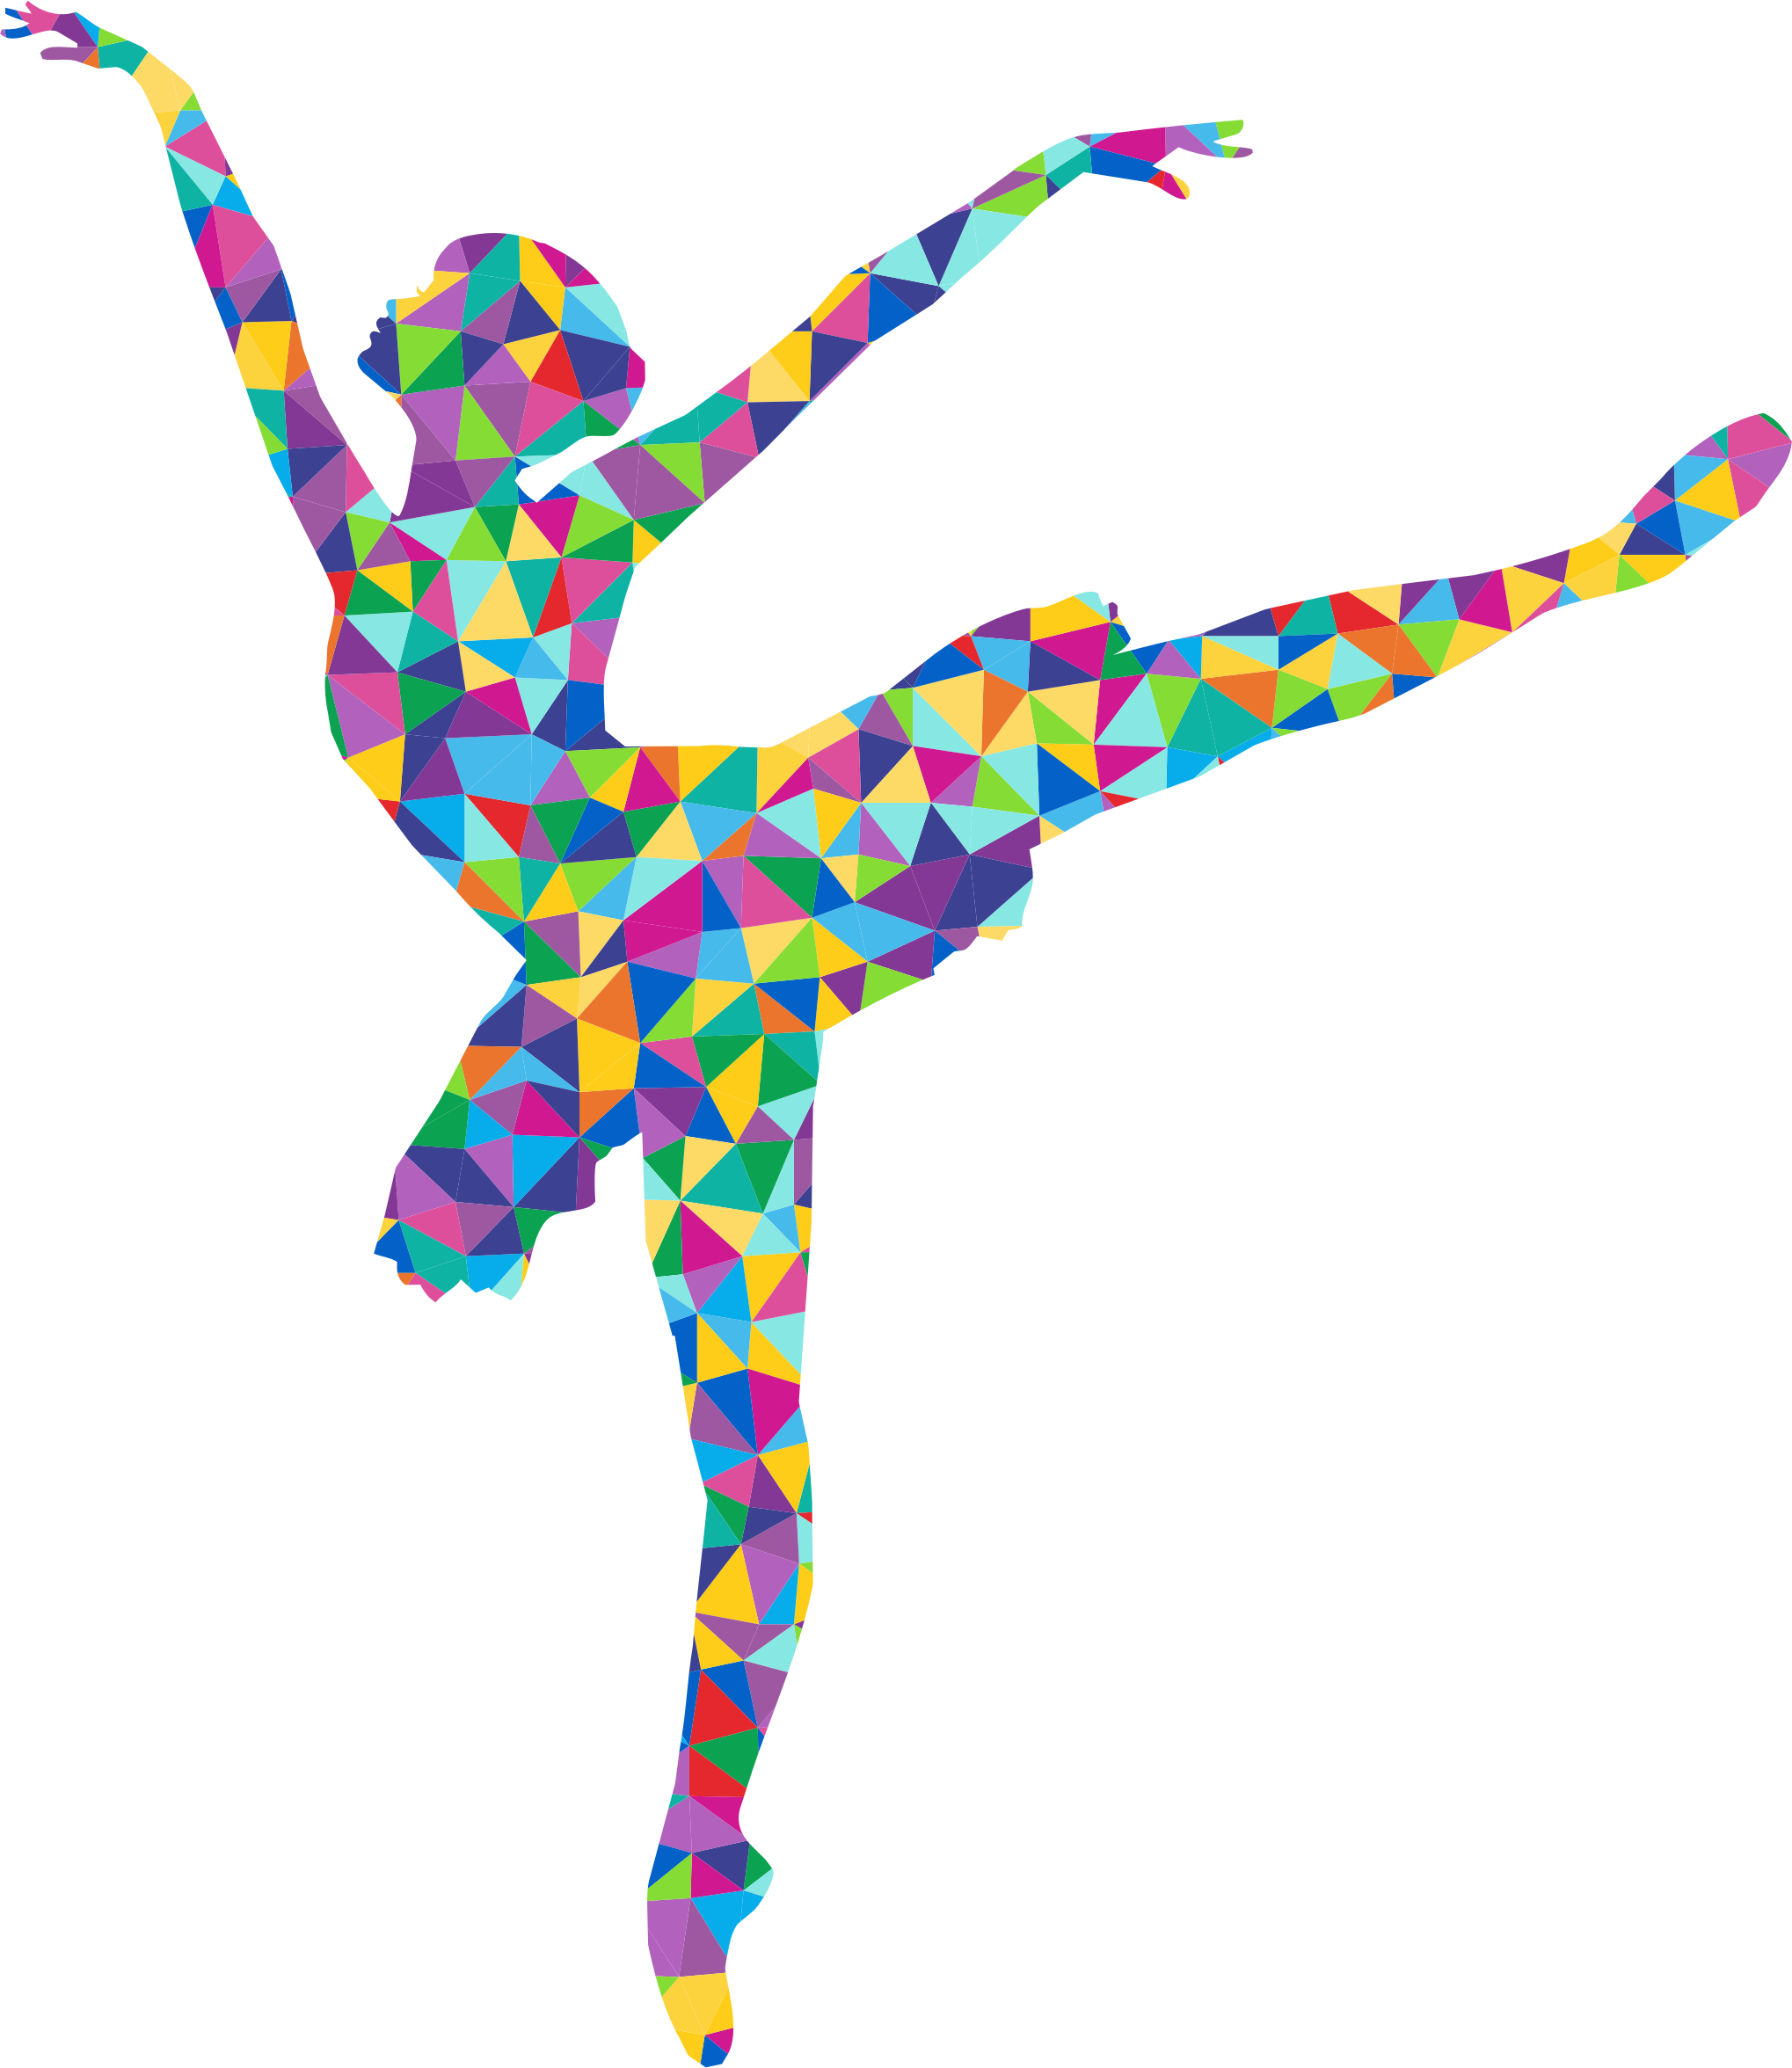 Prismatic Low Poly Graceful Ballerina Silhouette by GDJ